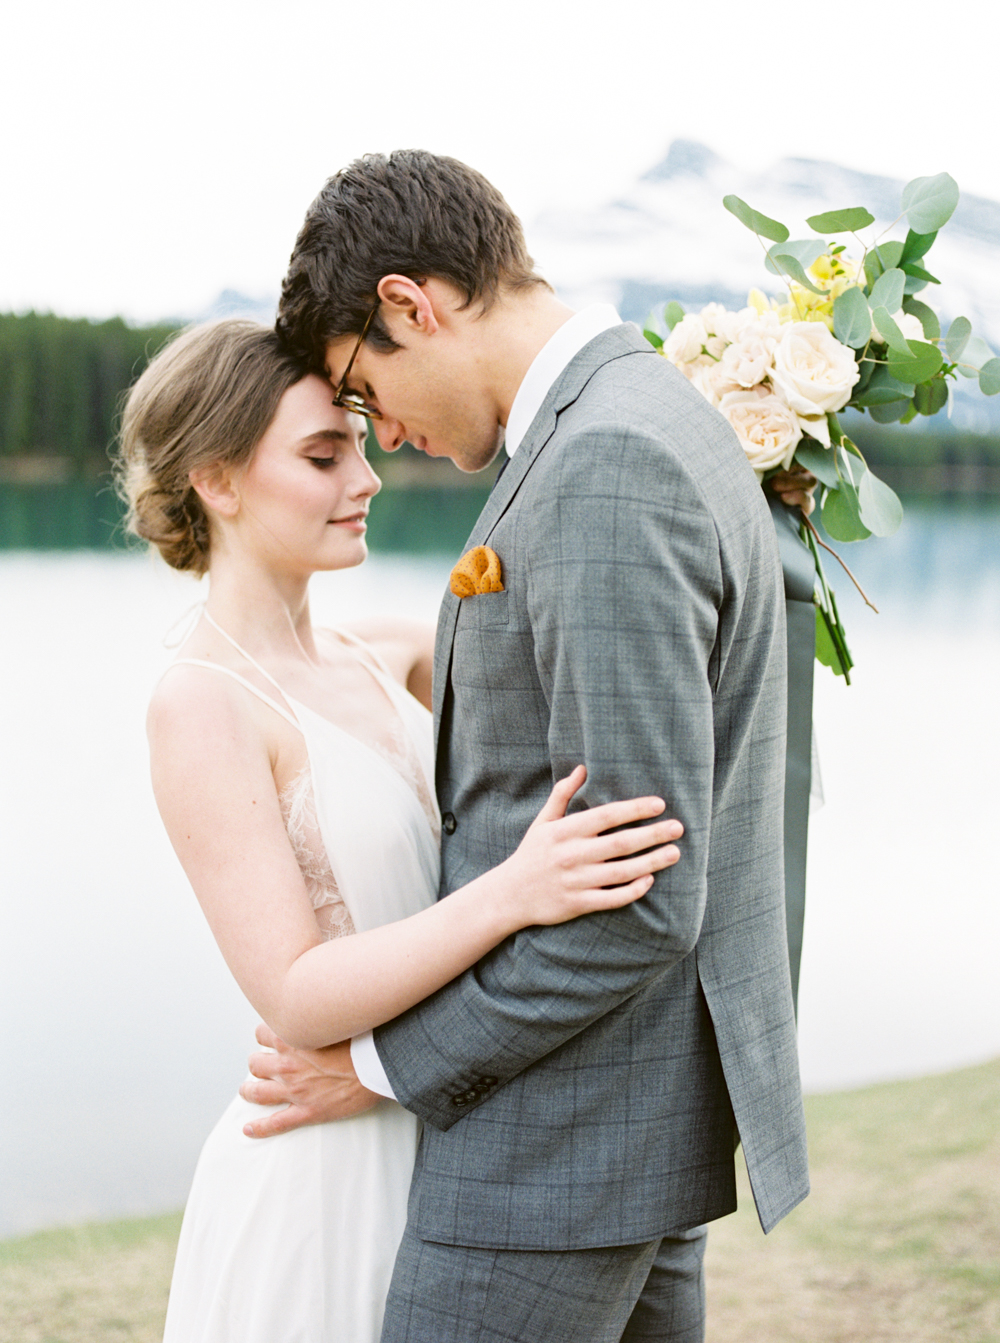 Banff Springs Hotel | Banff Springs Wedding | Banff Wedding | Banff Wedding Planner | Kayla Yestal Photography | Canmore Wedding Planner | Stacey Foley Design | Banff Elopement